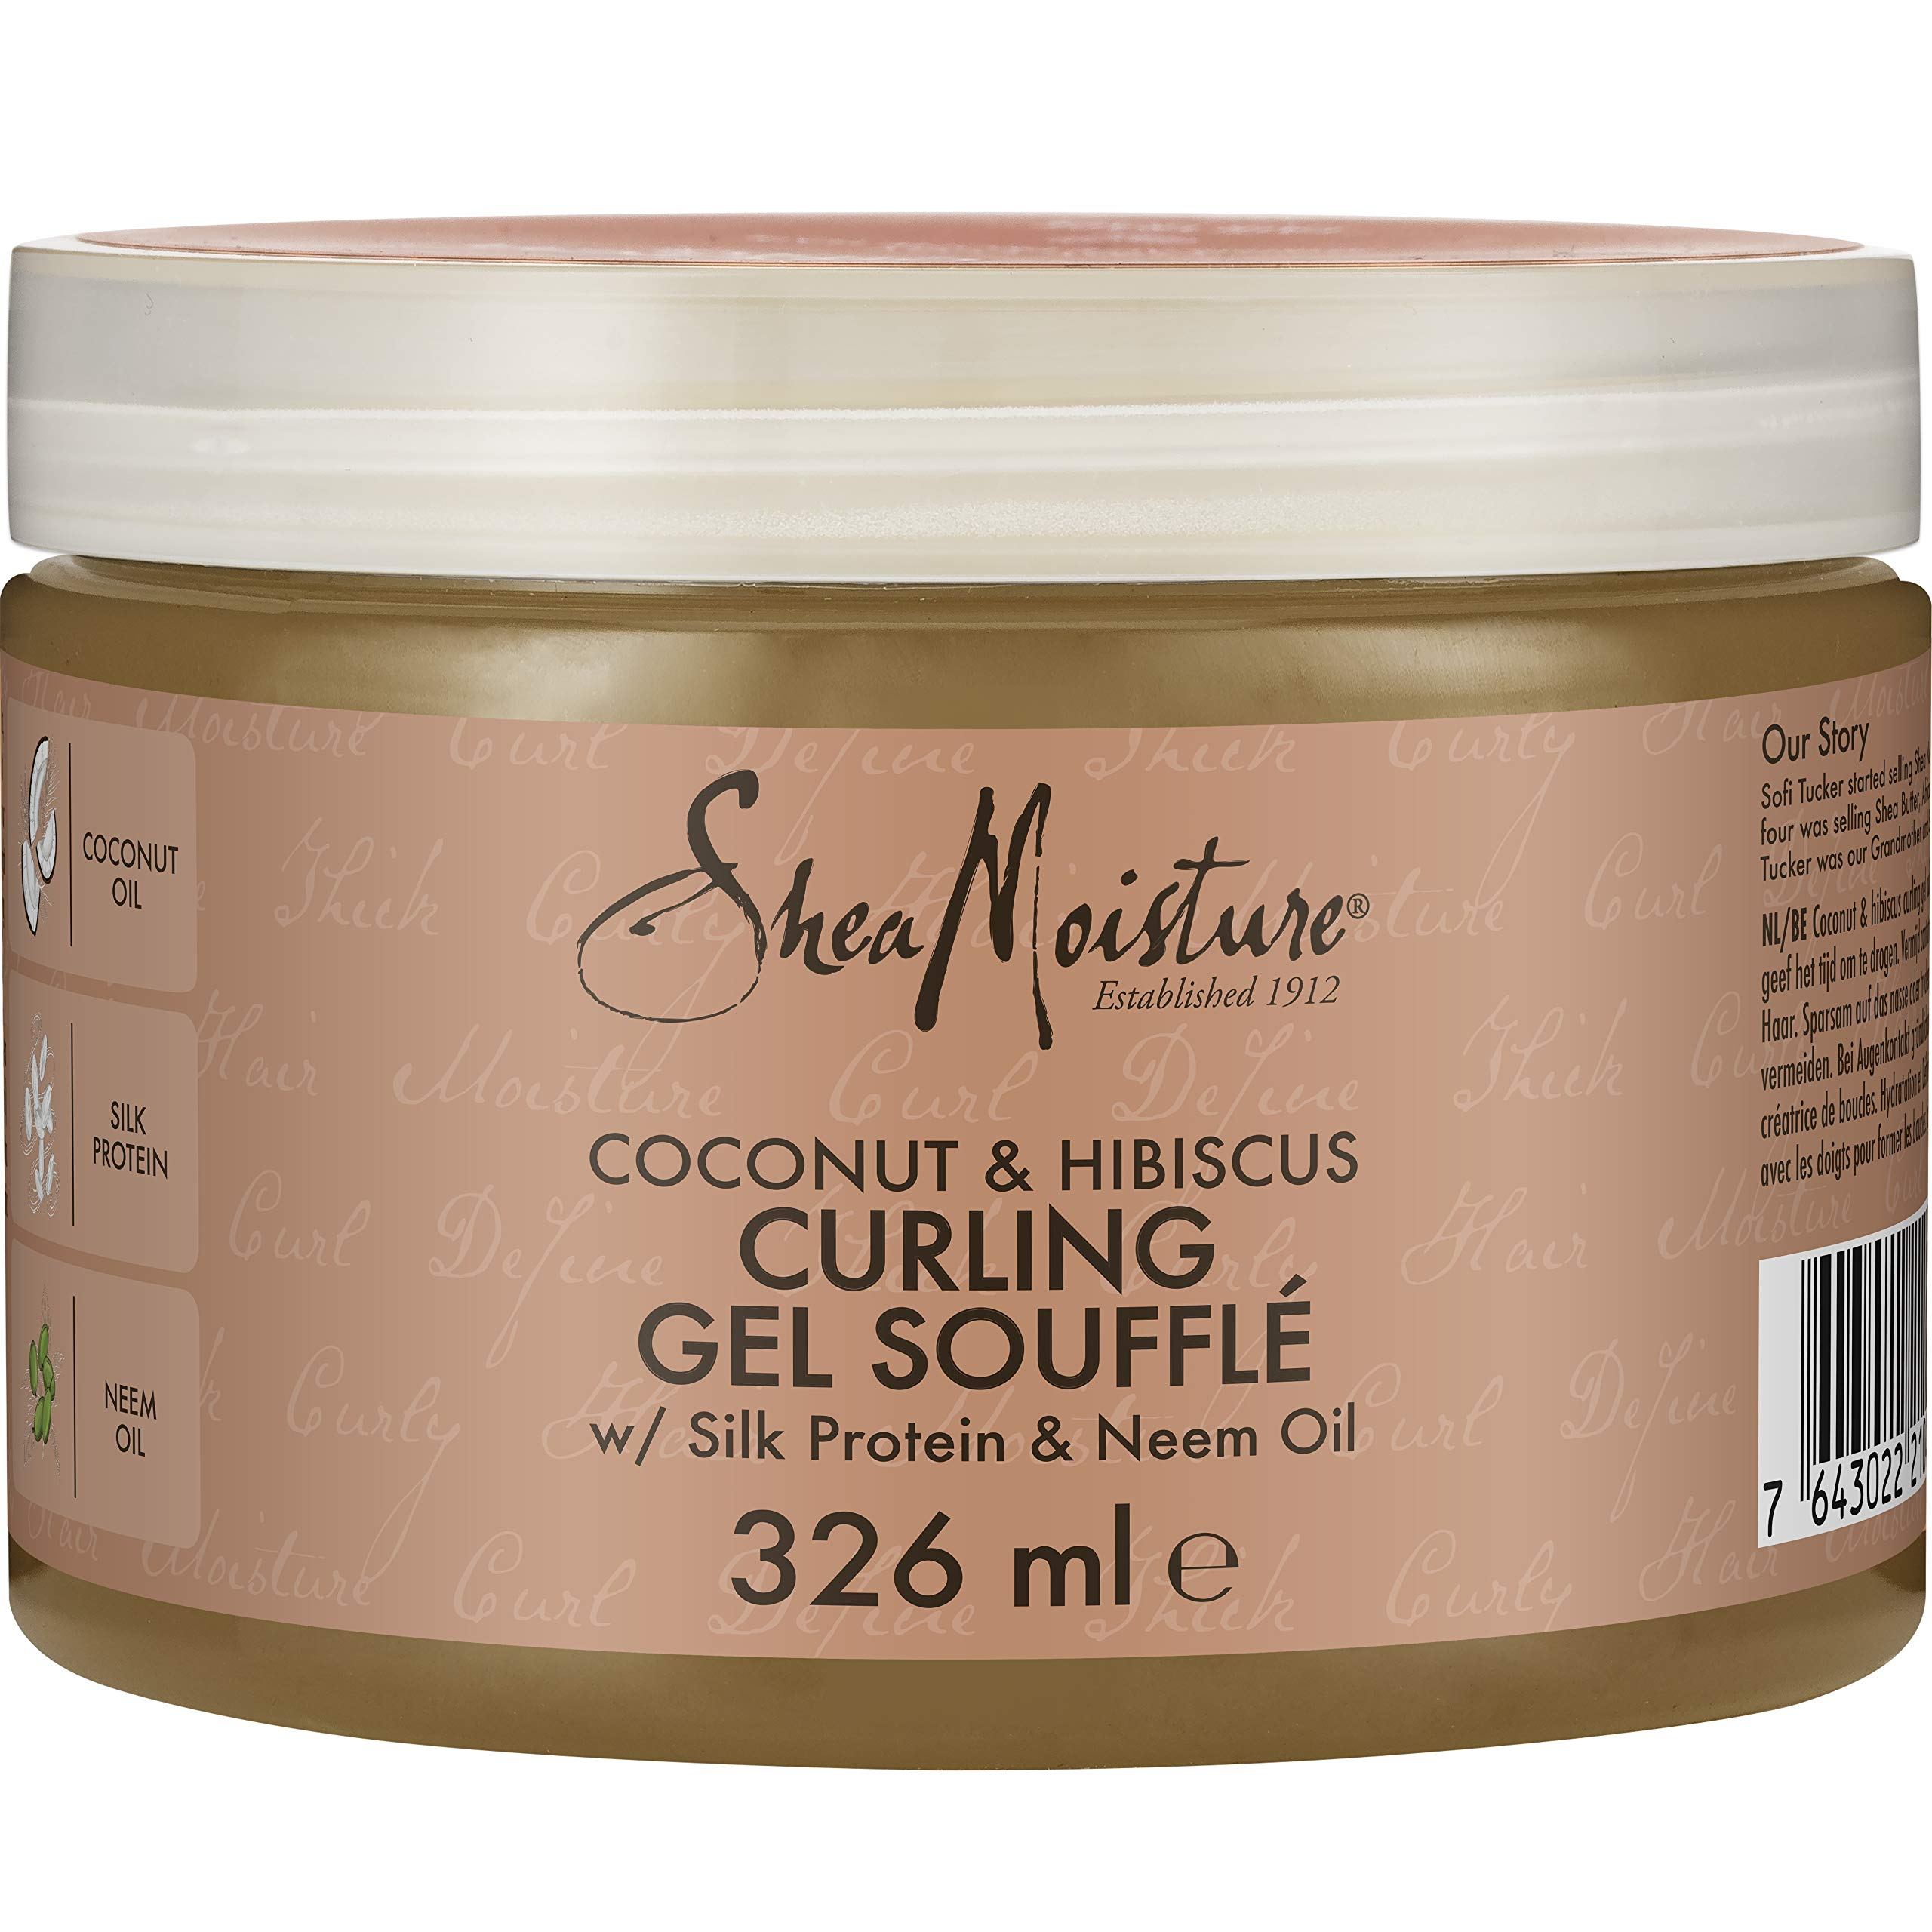 Shea Moisture Coconut and Hibiscus Curling Gel Souffle, 326 ml